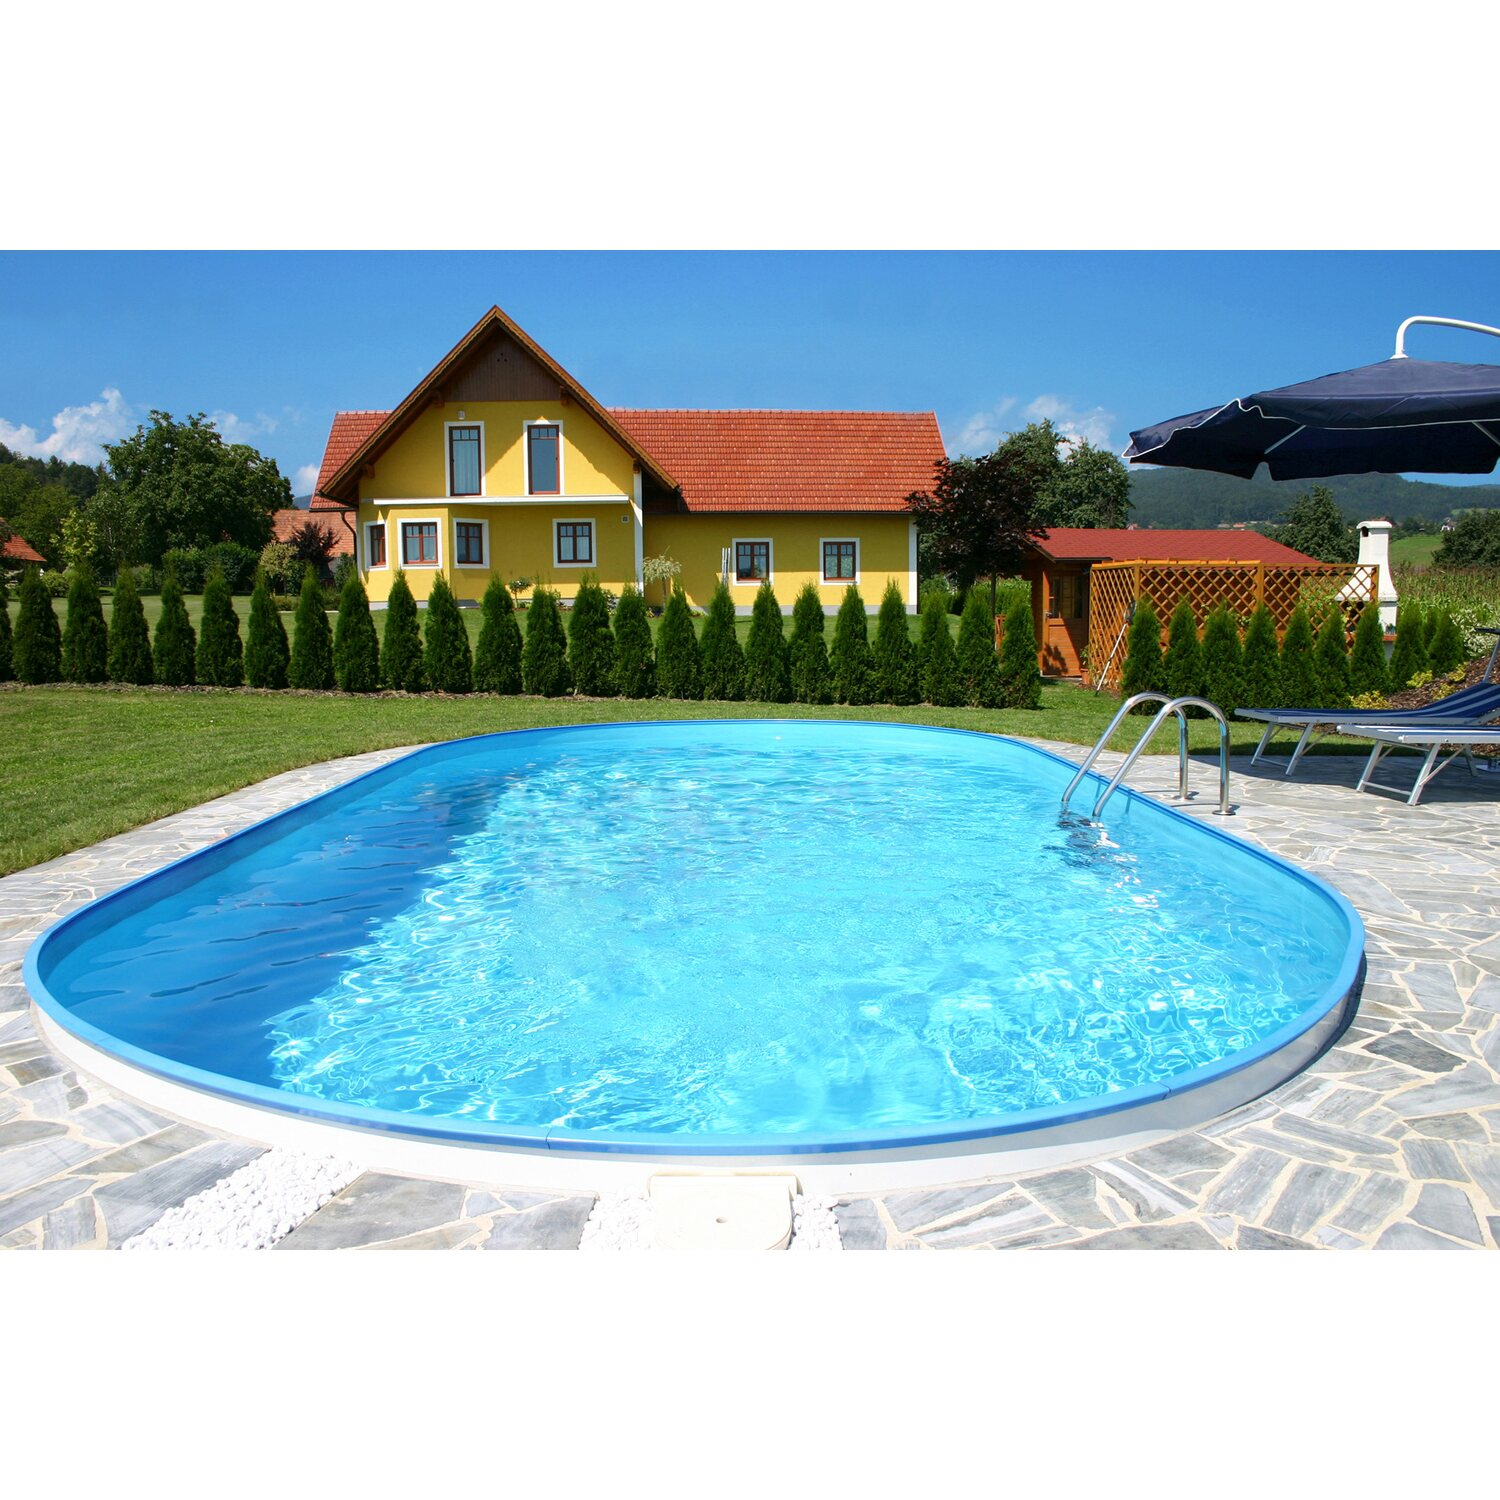 Pool kaufen bei obi for Obi intex pool